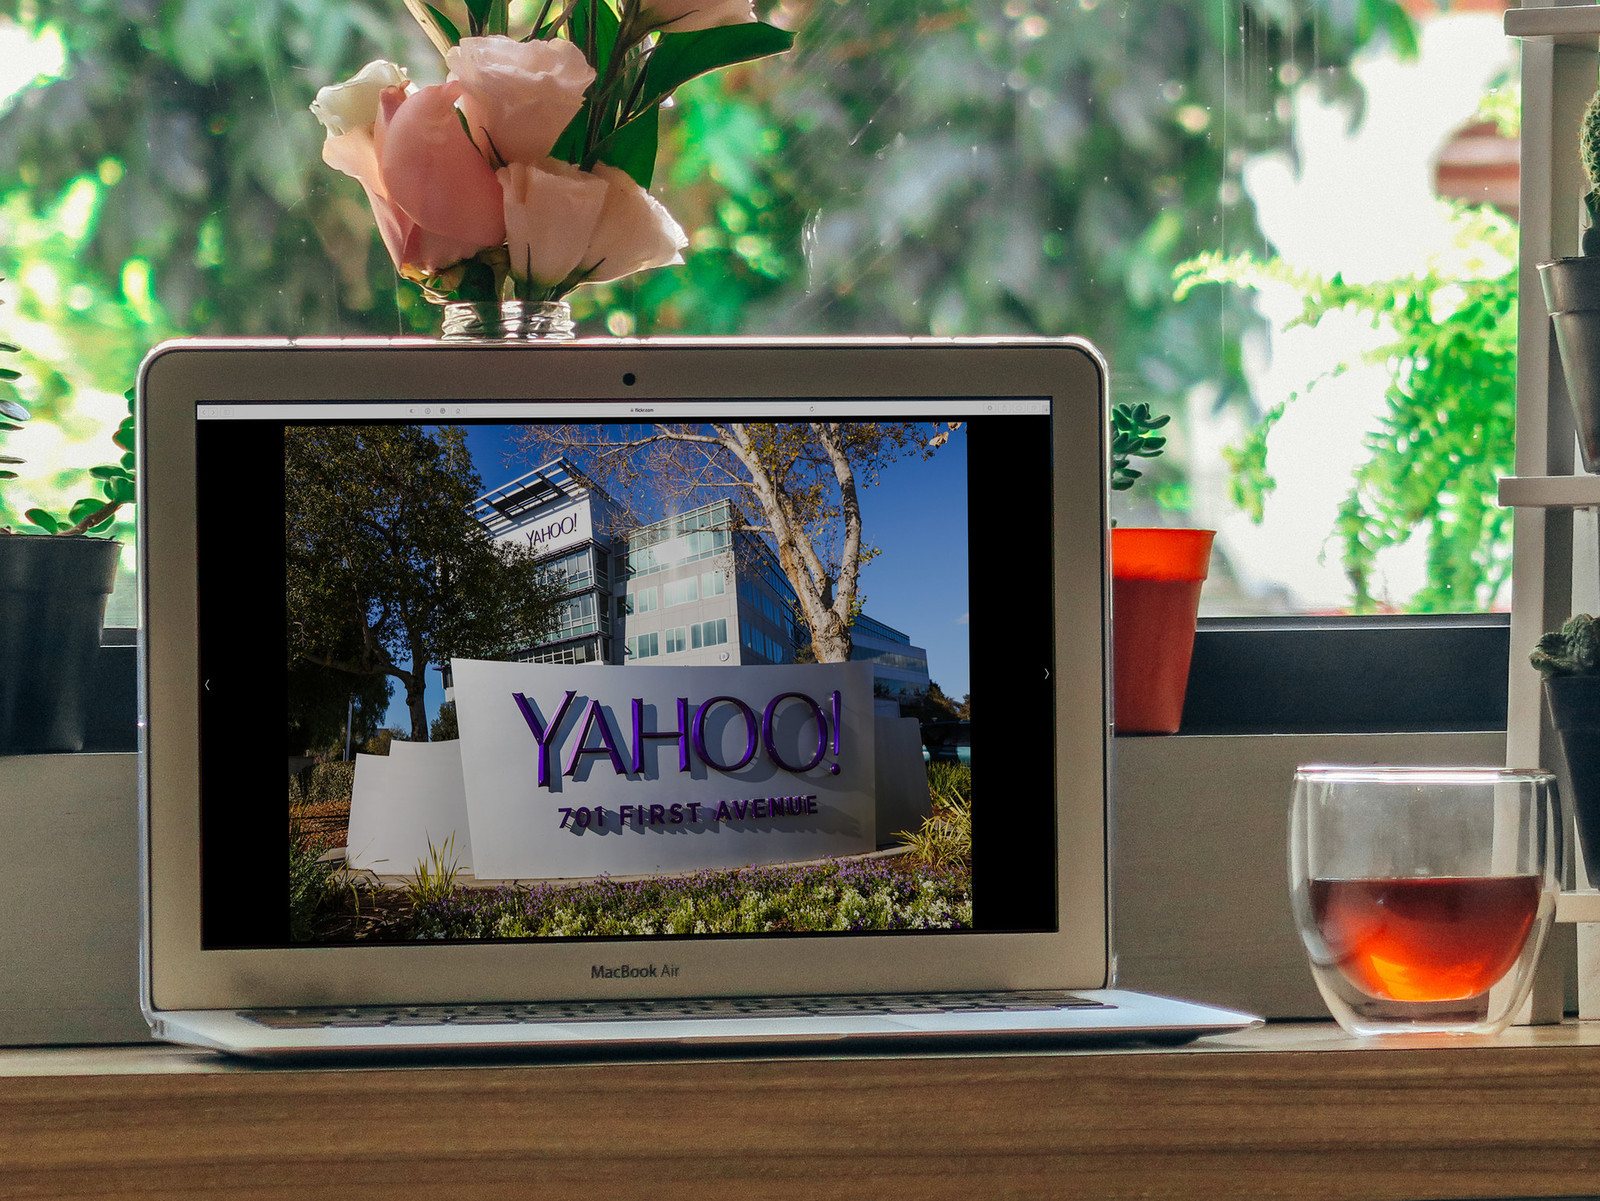 Yahoo!'s Headquarters are shown on a Macbook Air.